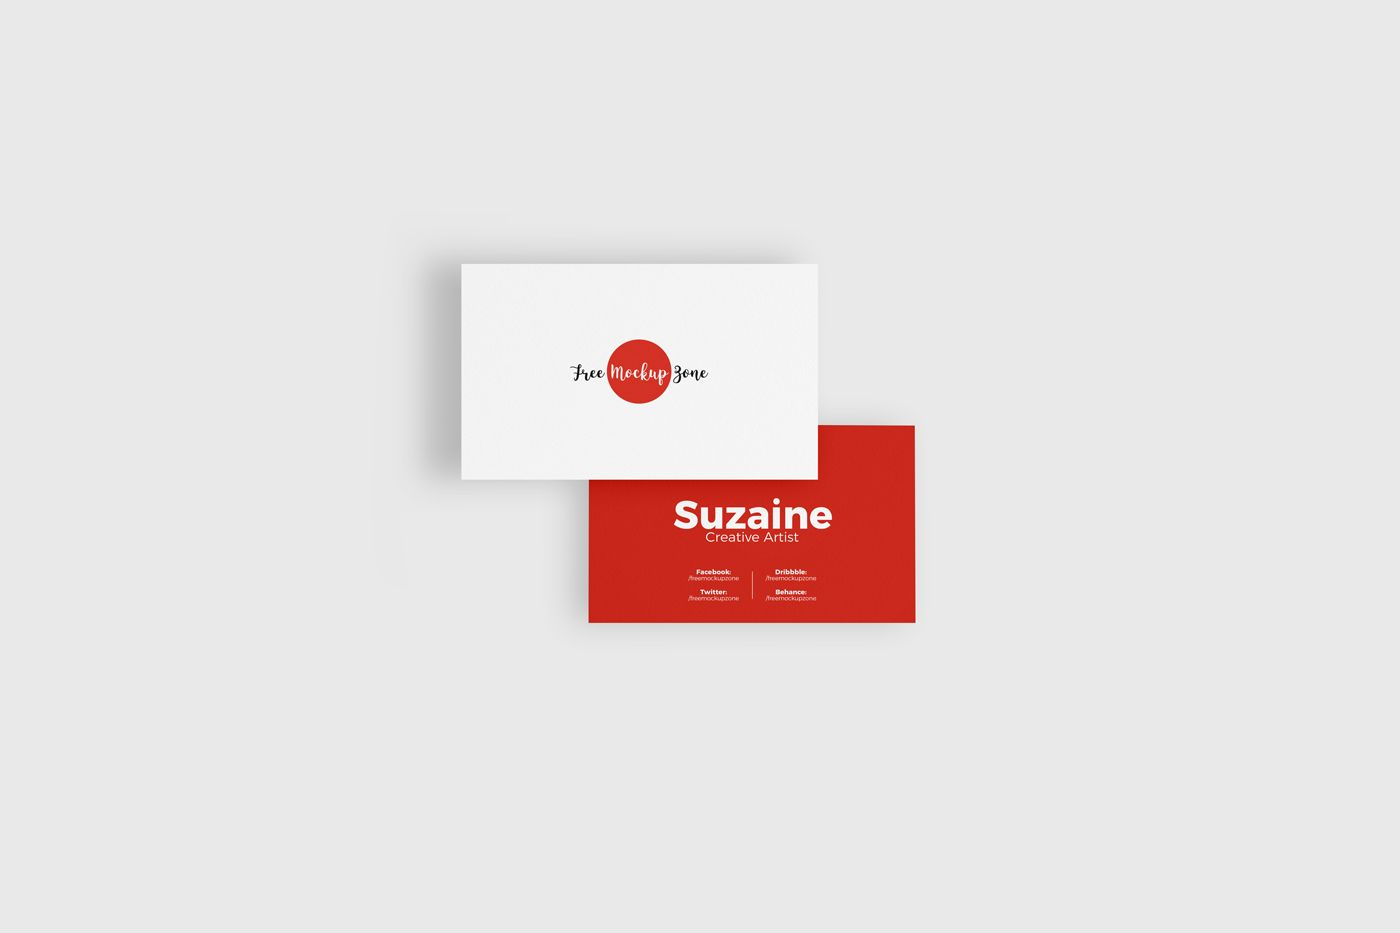 Free business card mockup psd 1 2018 300 design mockups pinterest free business card mockup psd 1 2018 300 reheart Image collections